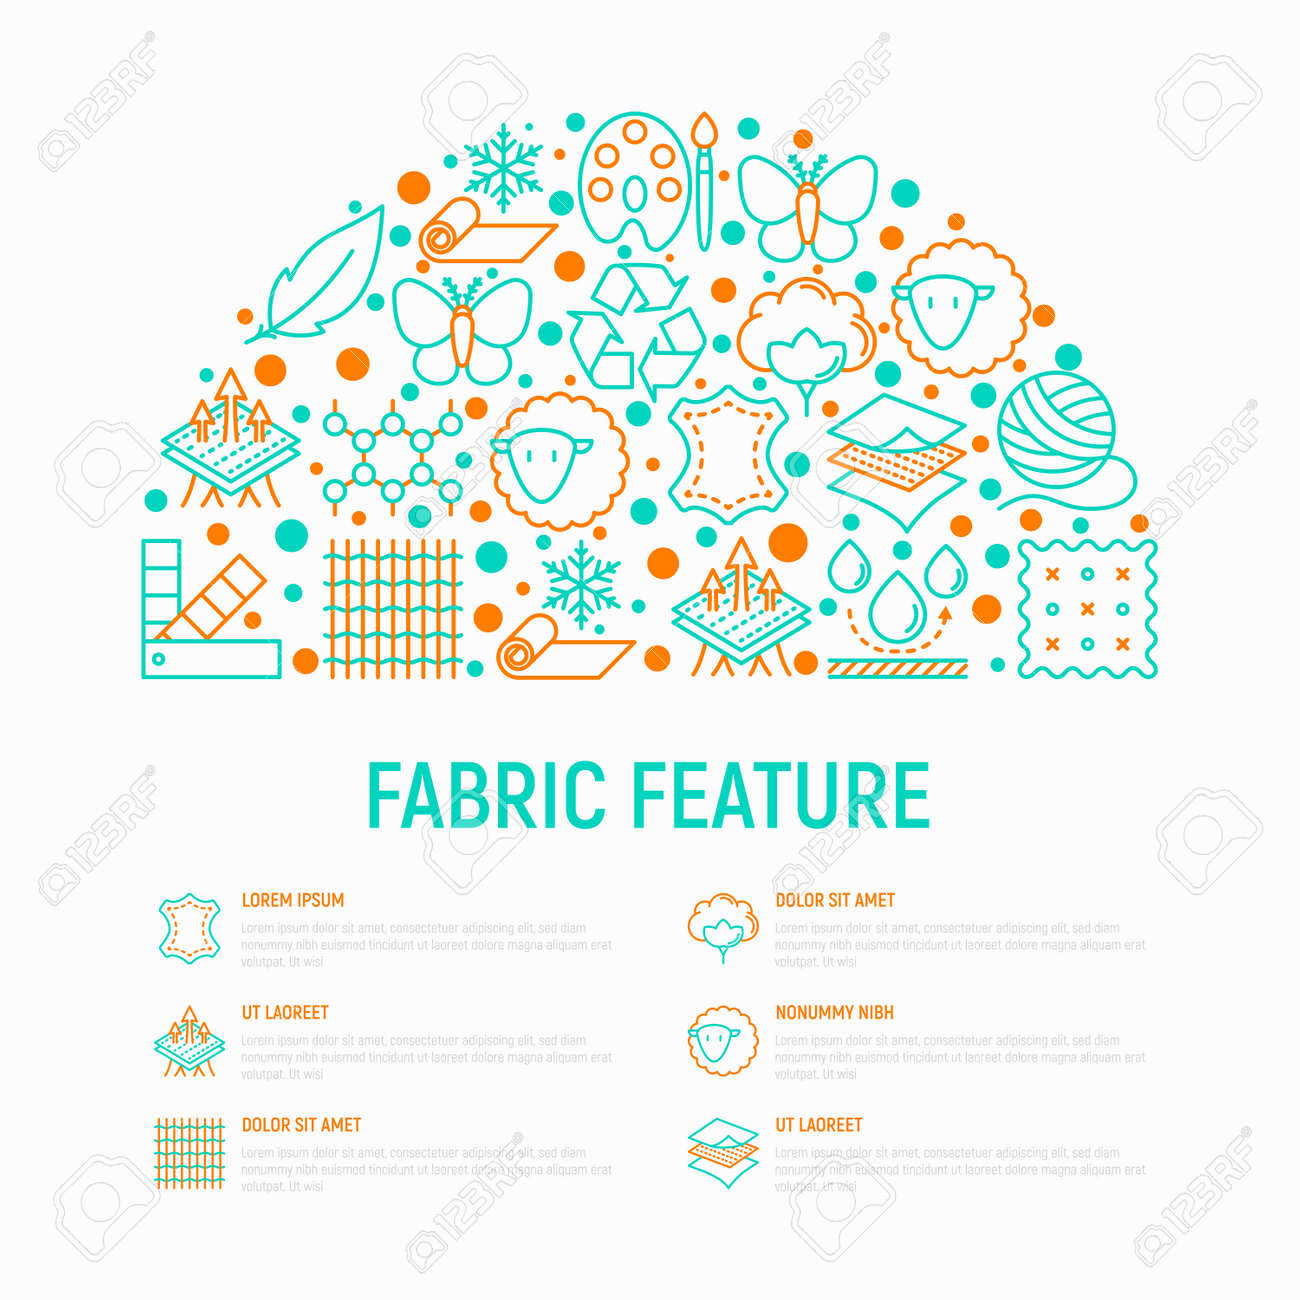 Fabric feature concept in half circle with thin line icons: leather, textile, cotton, wool, waterproof, acrylic, silk, eco-friendly material, breathable. Modern vector illustration, web page template - 109889344